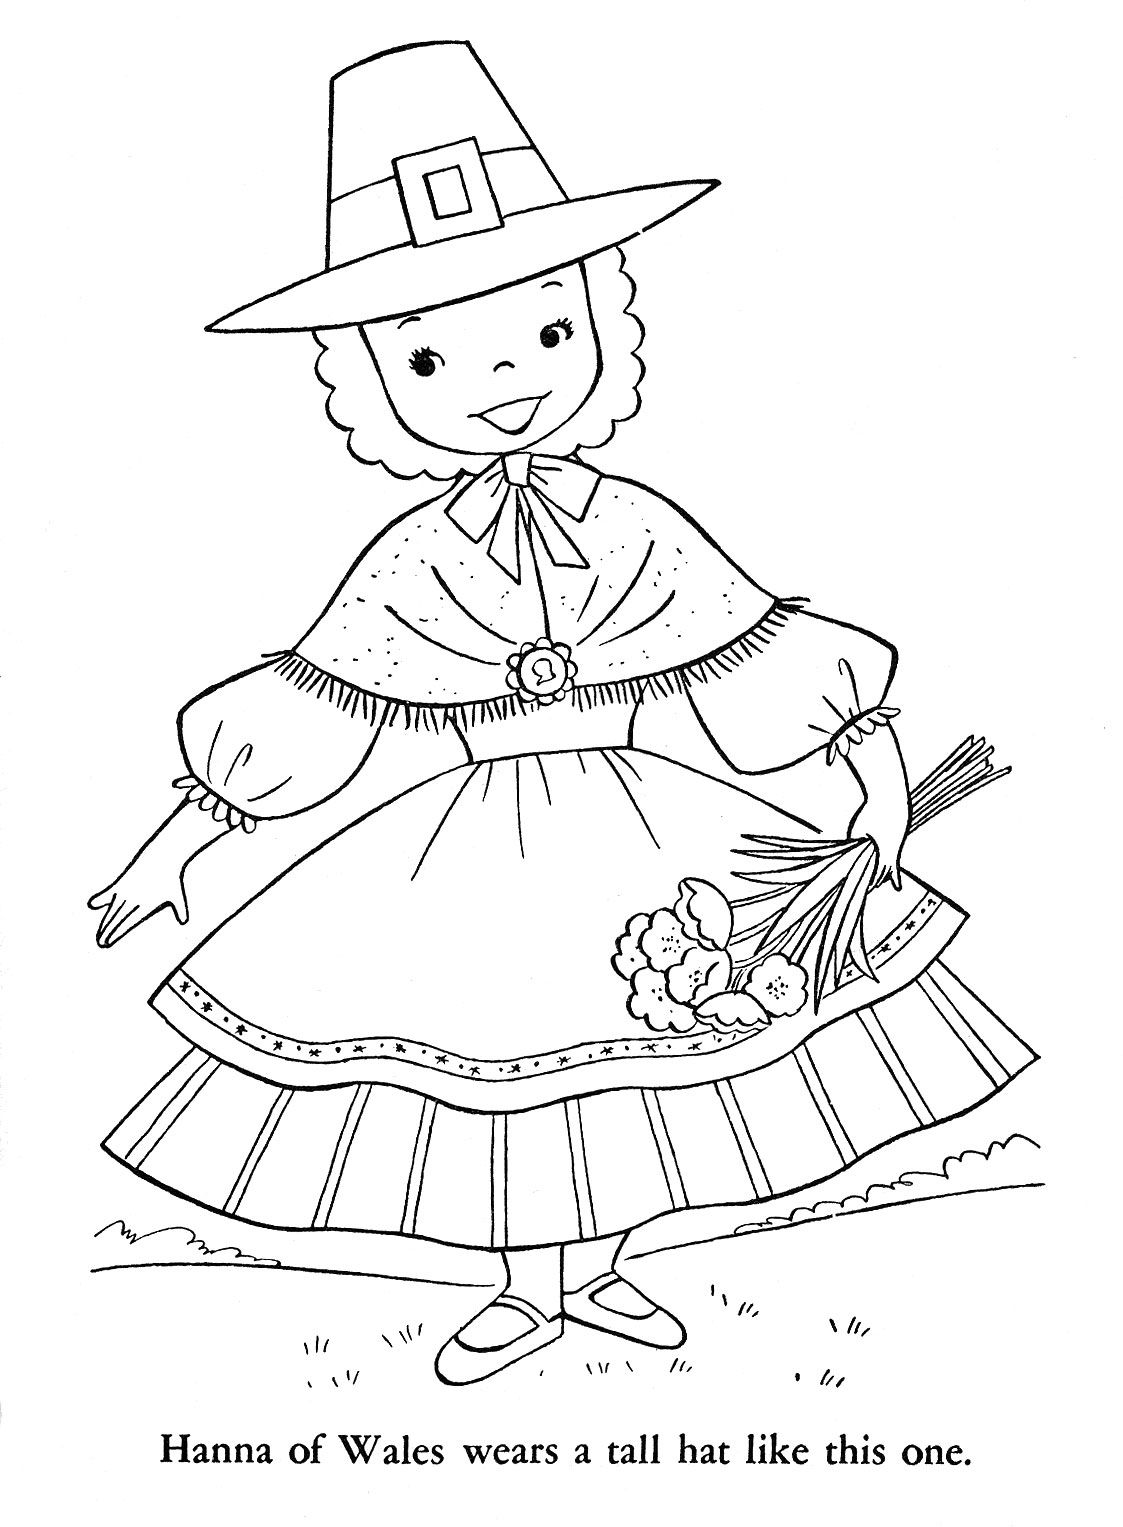 Irish princess coloring pages - Free Printable Princess Coloring Book Pages Of Princess From Around The World Provide Hours Of Fun For Kids These Cute Images Are Just A Few Of The Many